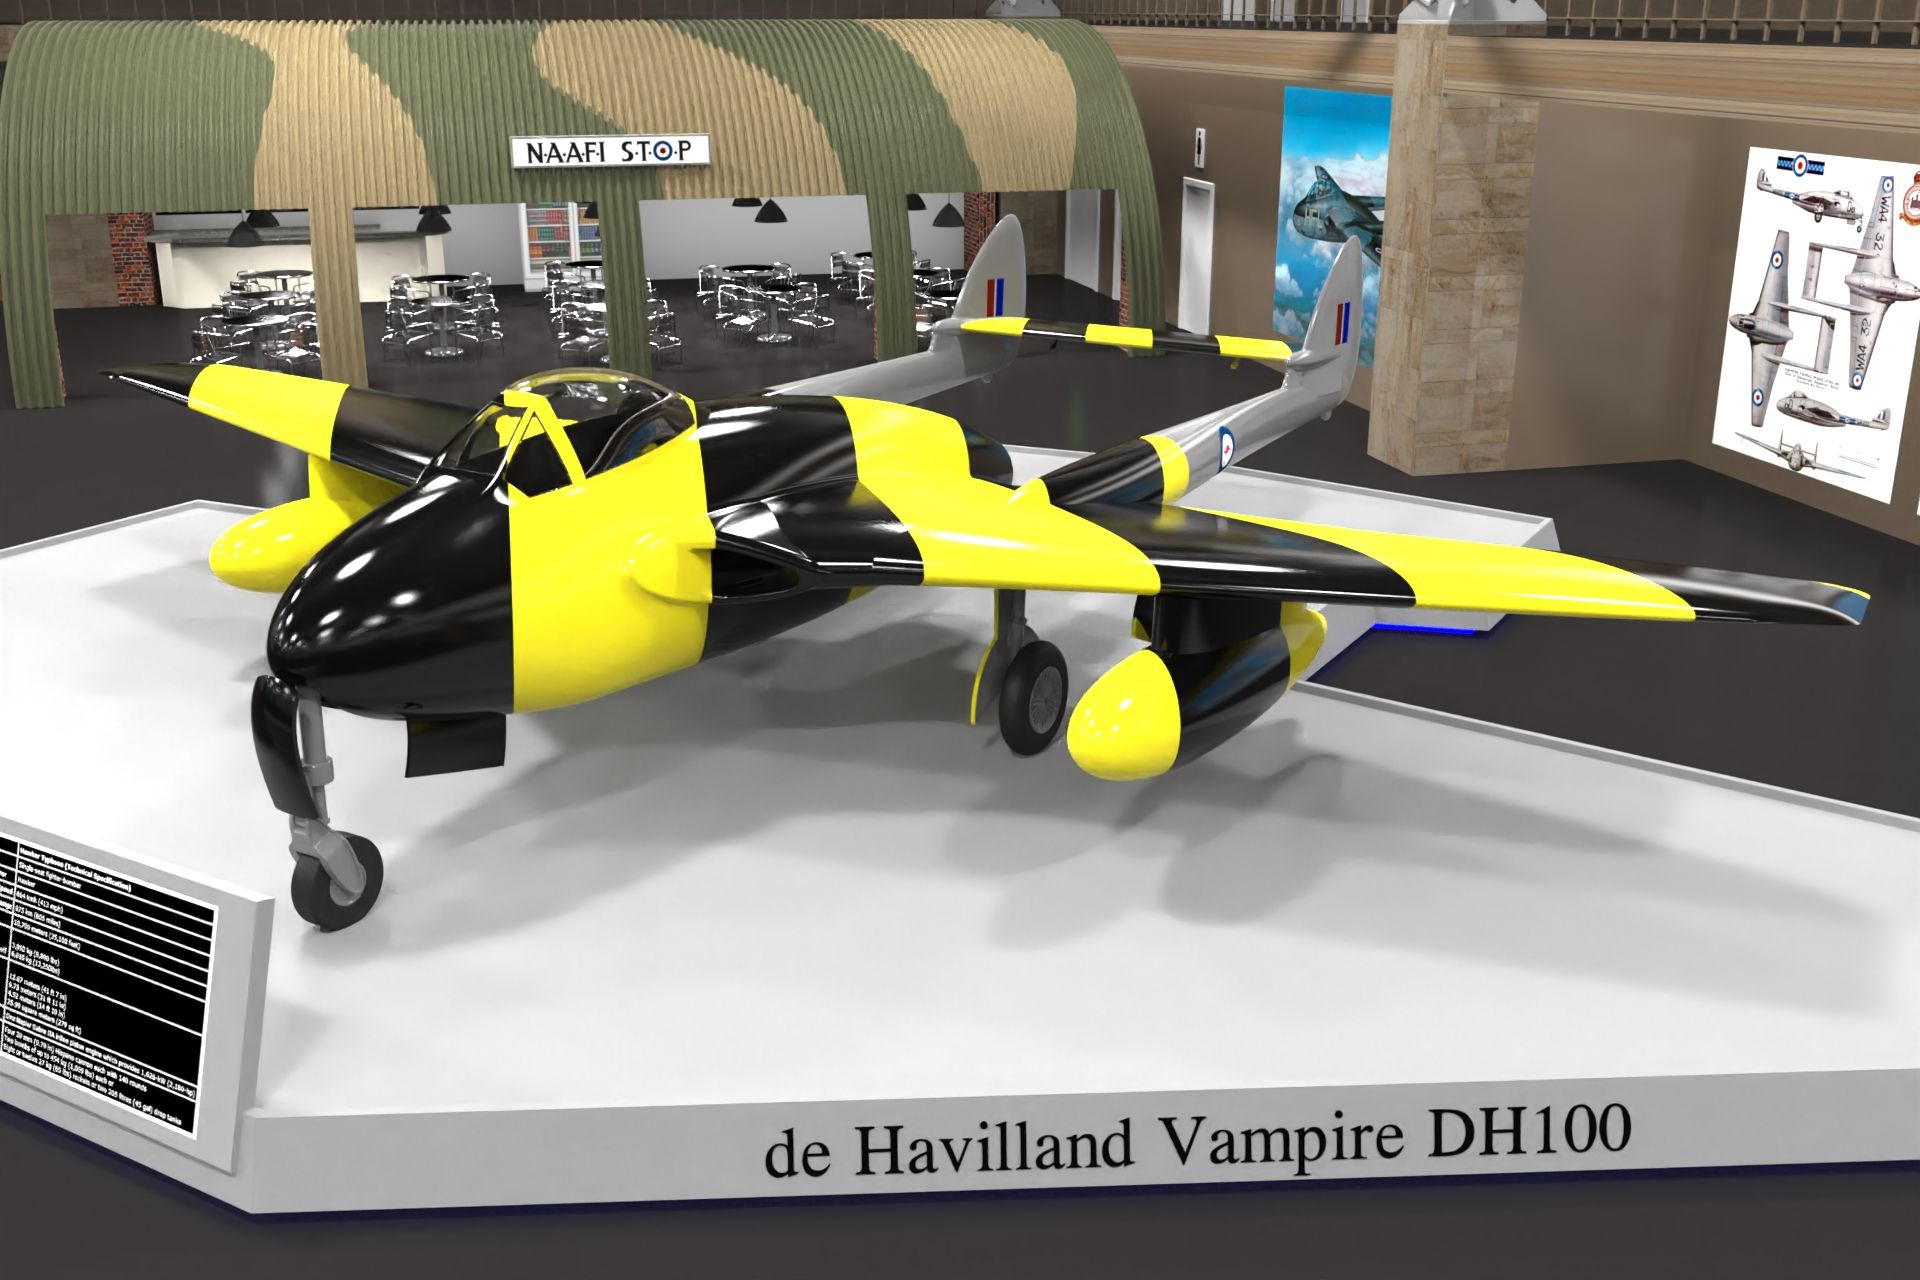 de Havilland Vampire created using SolidWorks and rendered